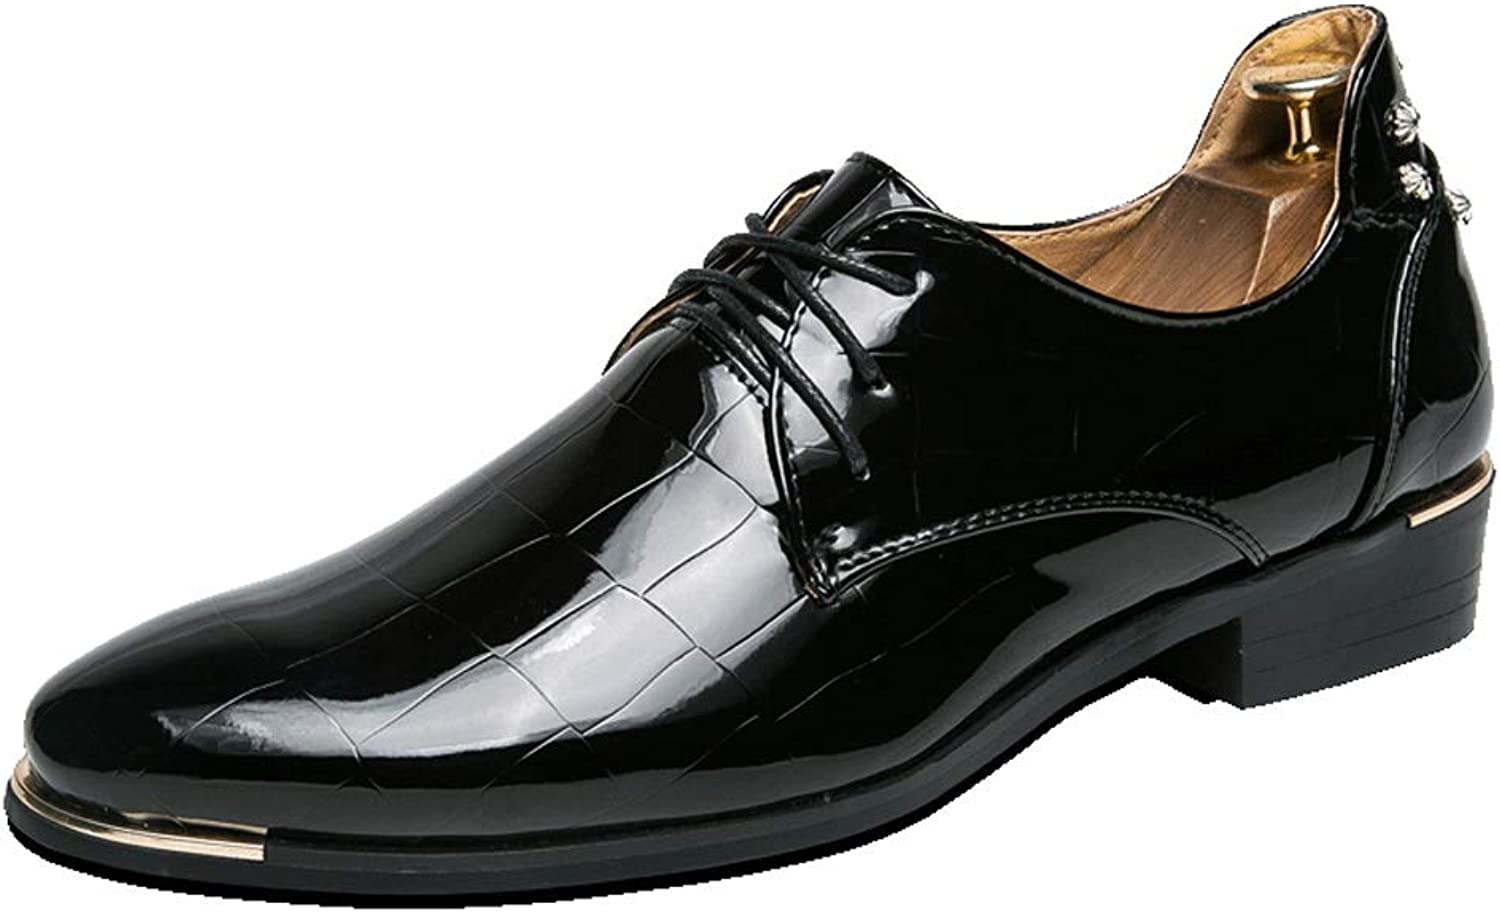 SHANGWU Men's Business shoes Casual shoes Bright Leather Youth Fashion Men's shoes